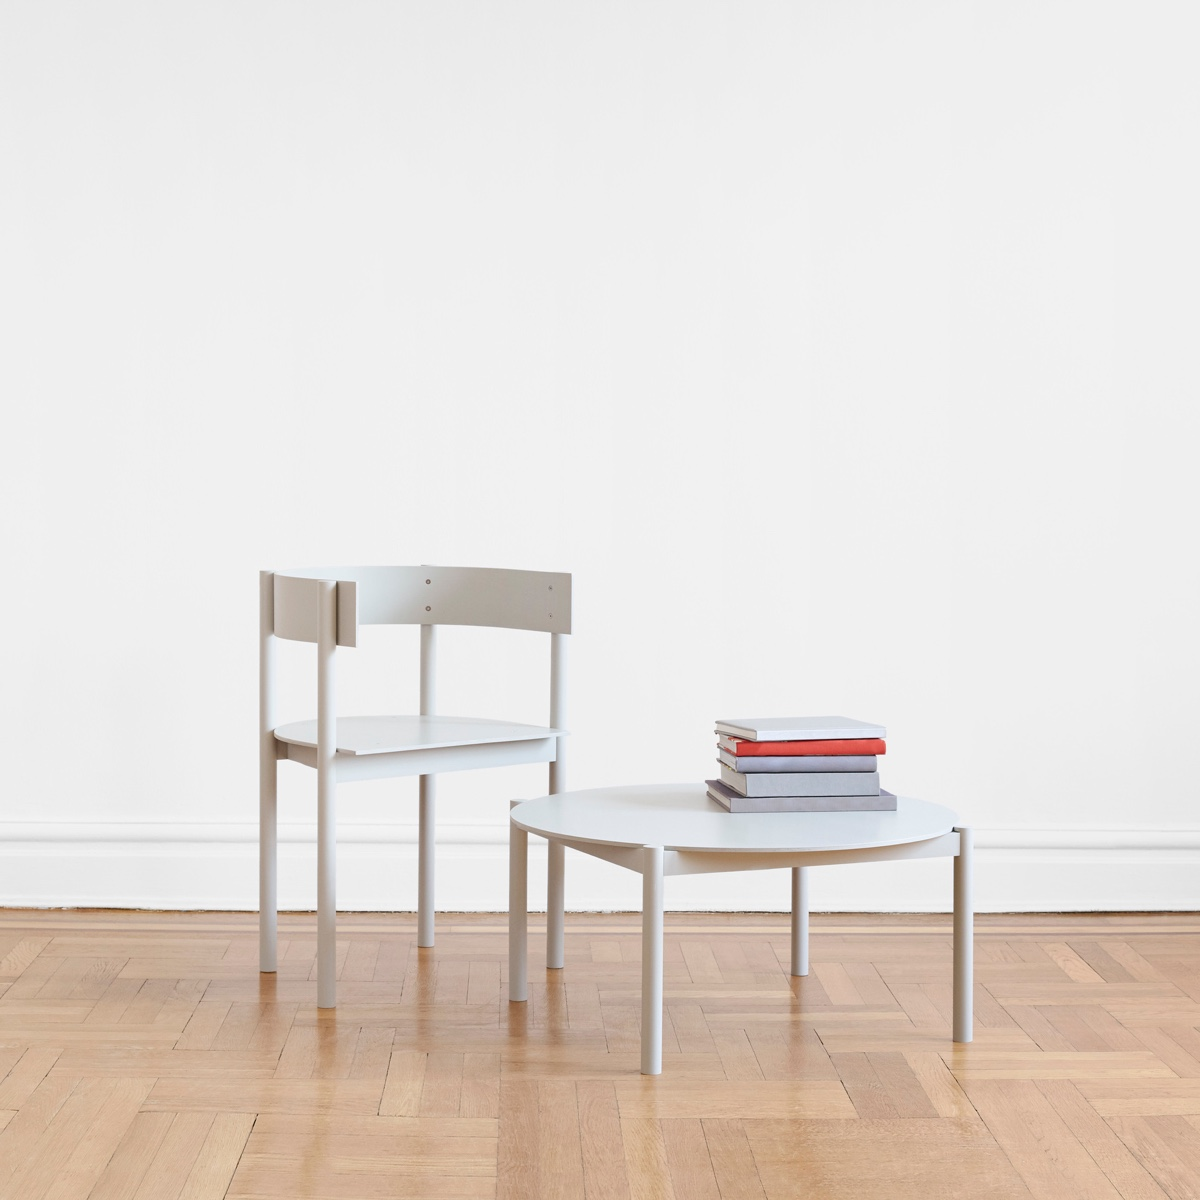 TheTypecast Chair and Coffee Table, insolid maple and birch ply, for Matter Made.Image courtesy ofPhilippe Malouin.